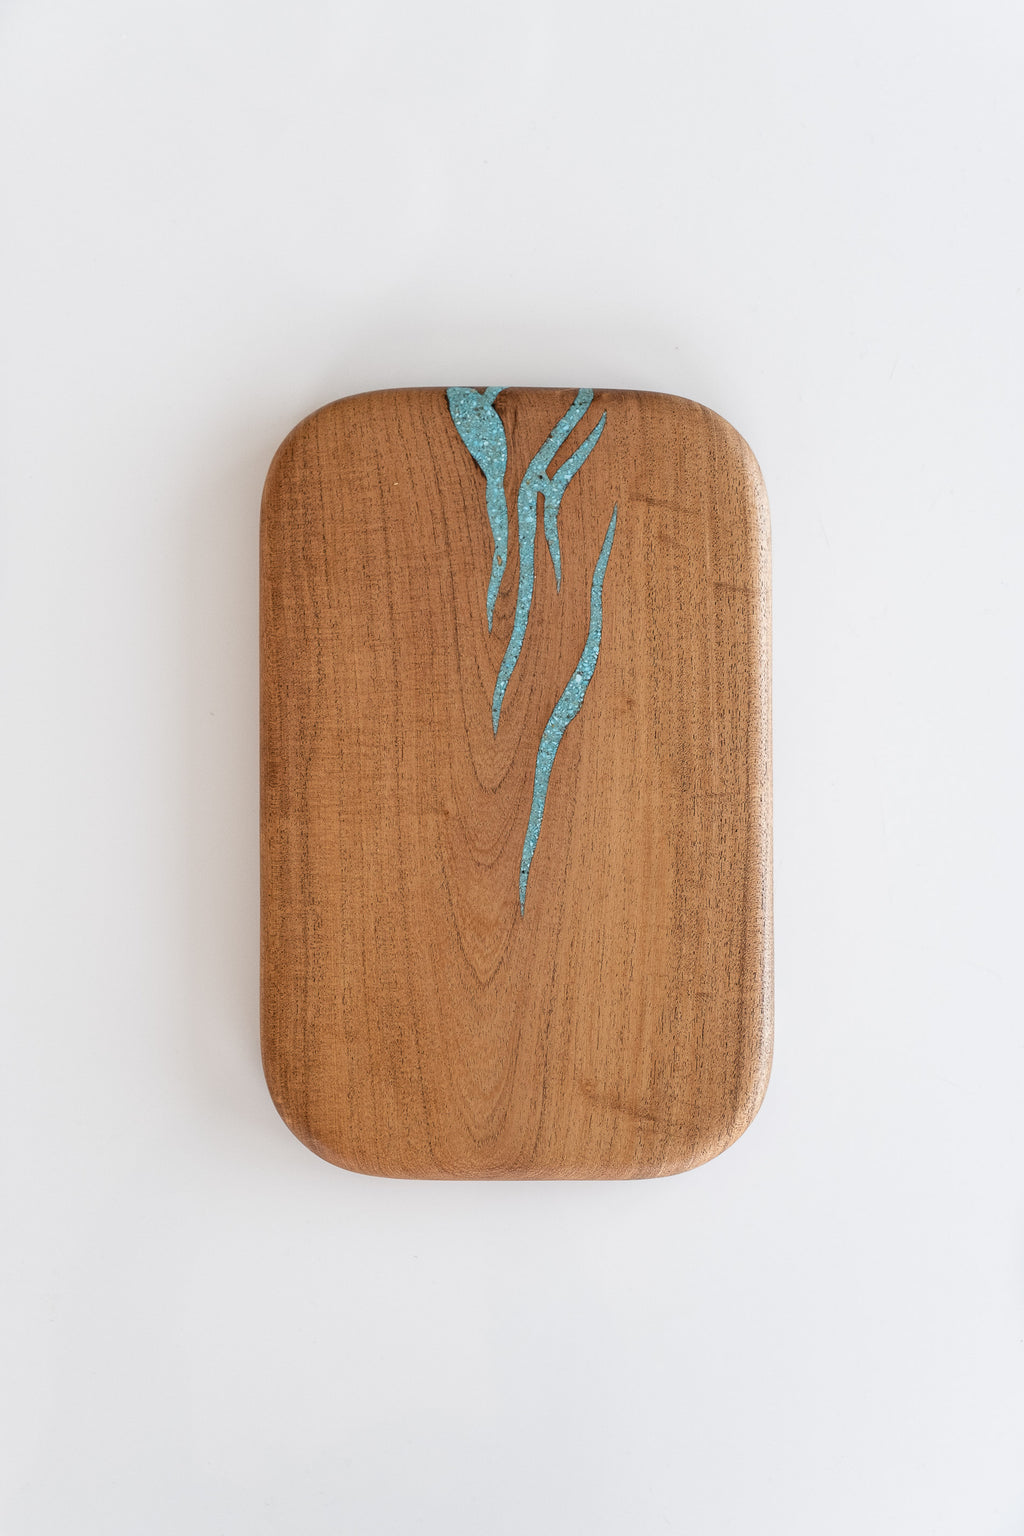 MINI CUTTING BOARD WITH INLAY